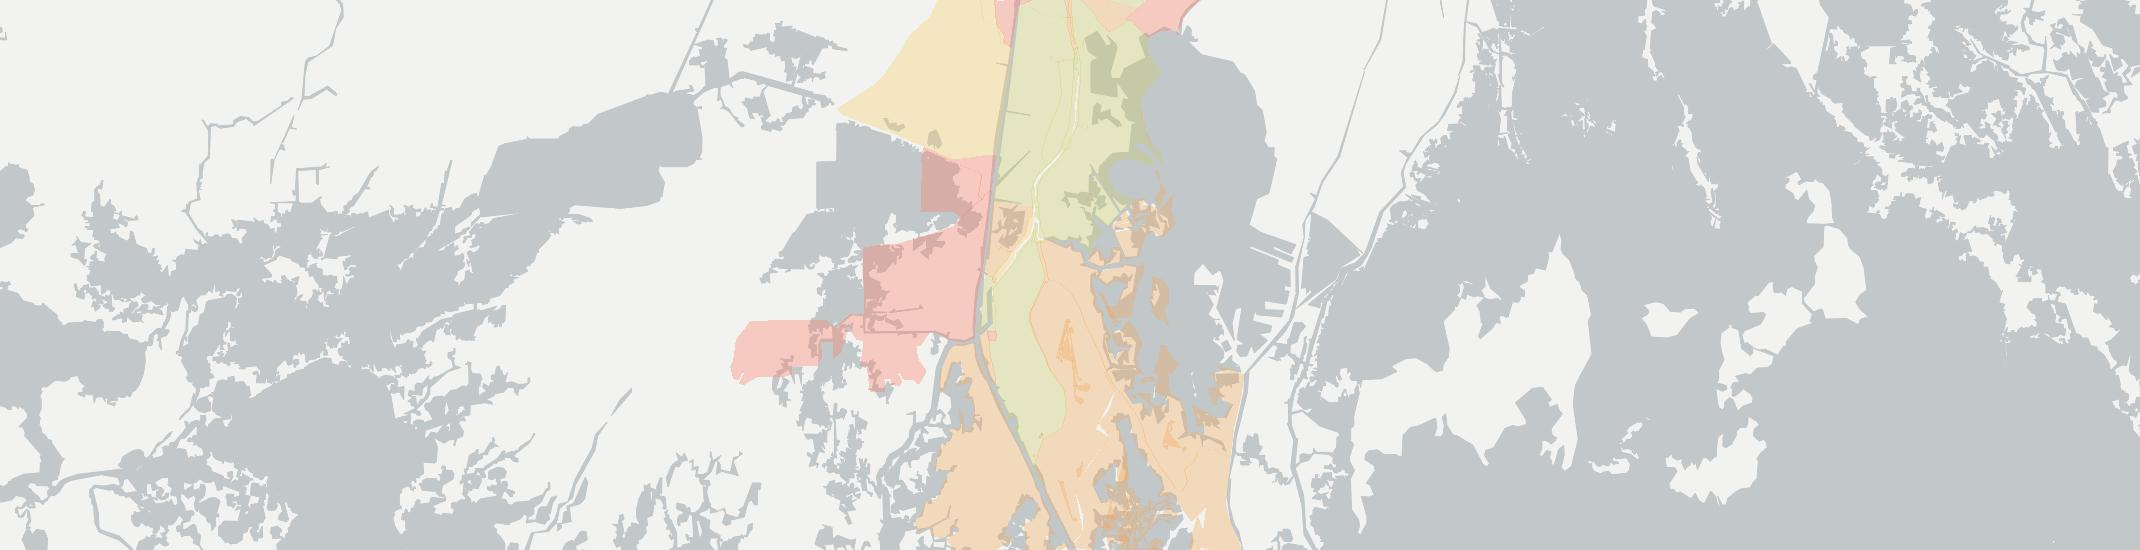 Dulac Internet Competition Map. Click for interactive map.